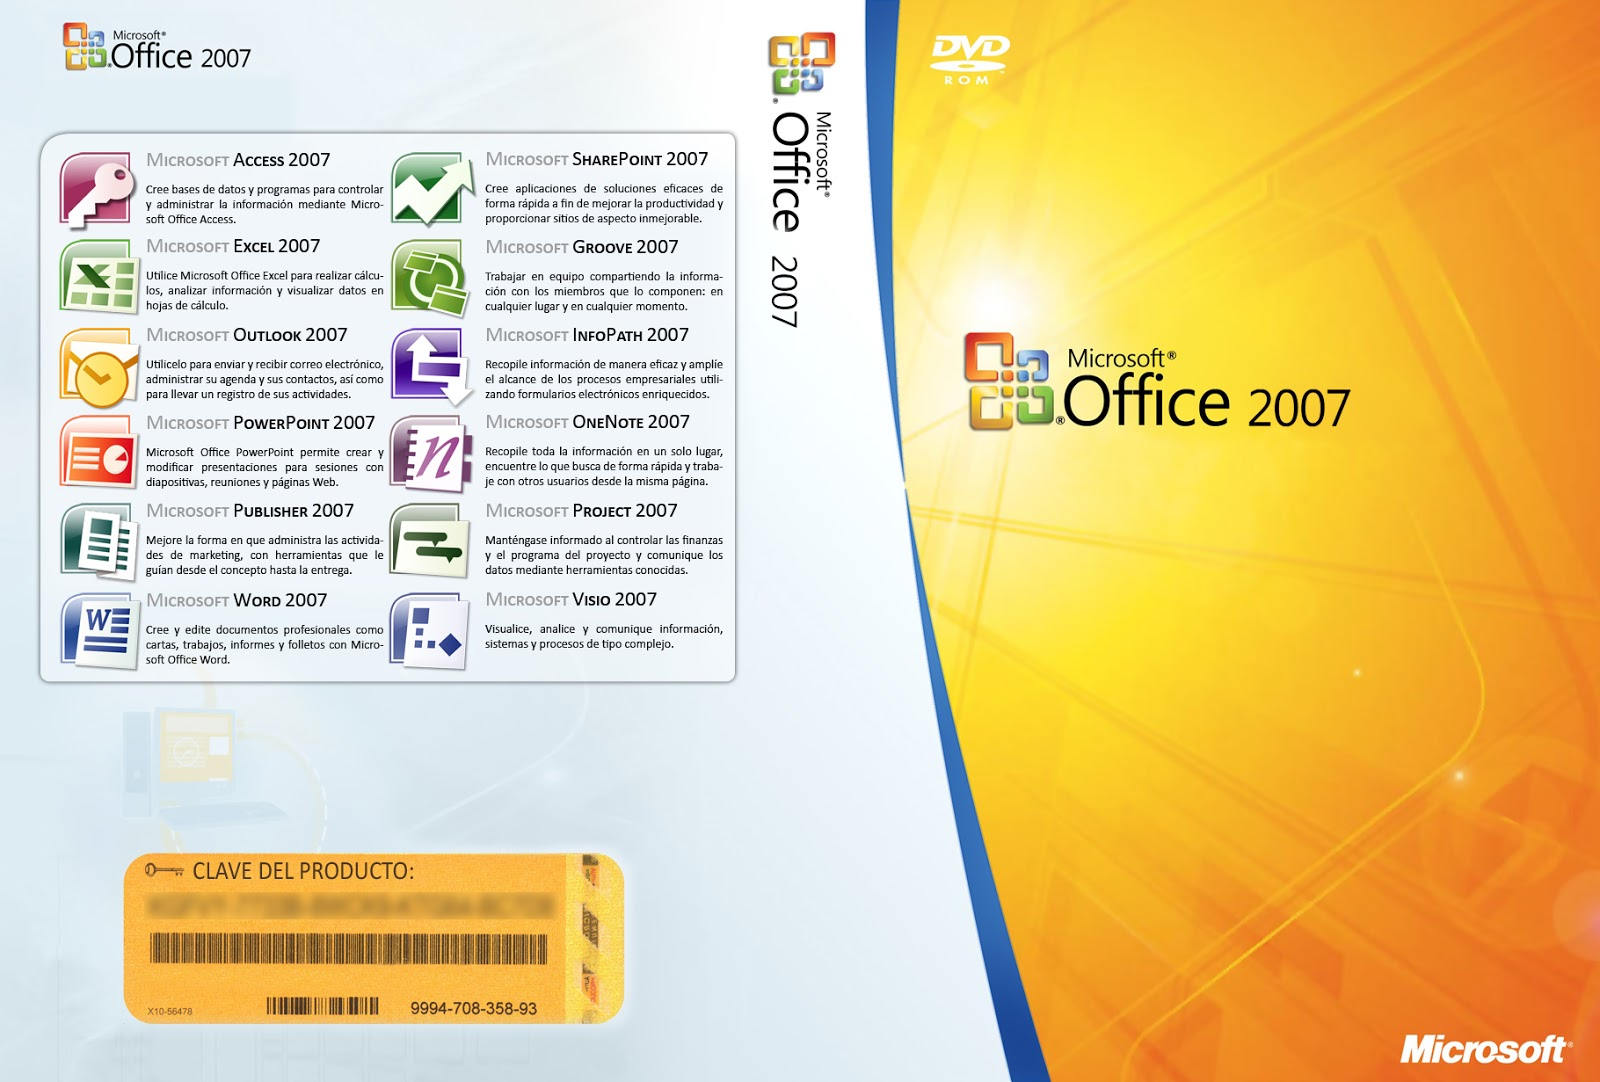 Microsoft Office Famille Et Etudiant 2007 Telecharger Microsoft Office 2007 Xp Professionnel Senlopodi Ml